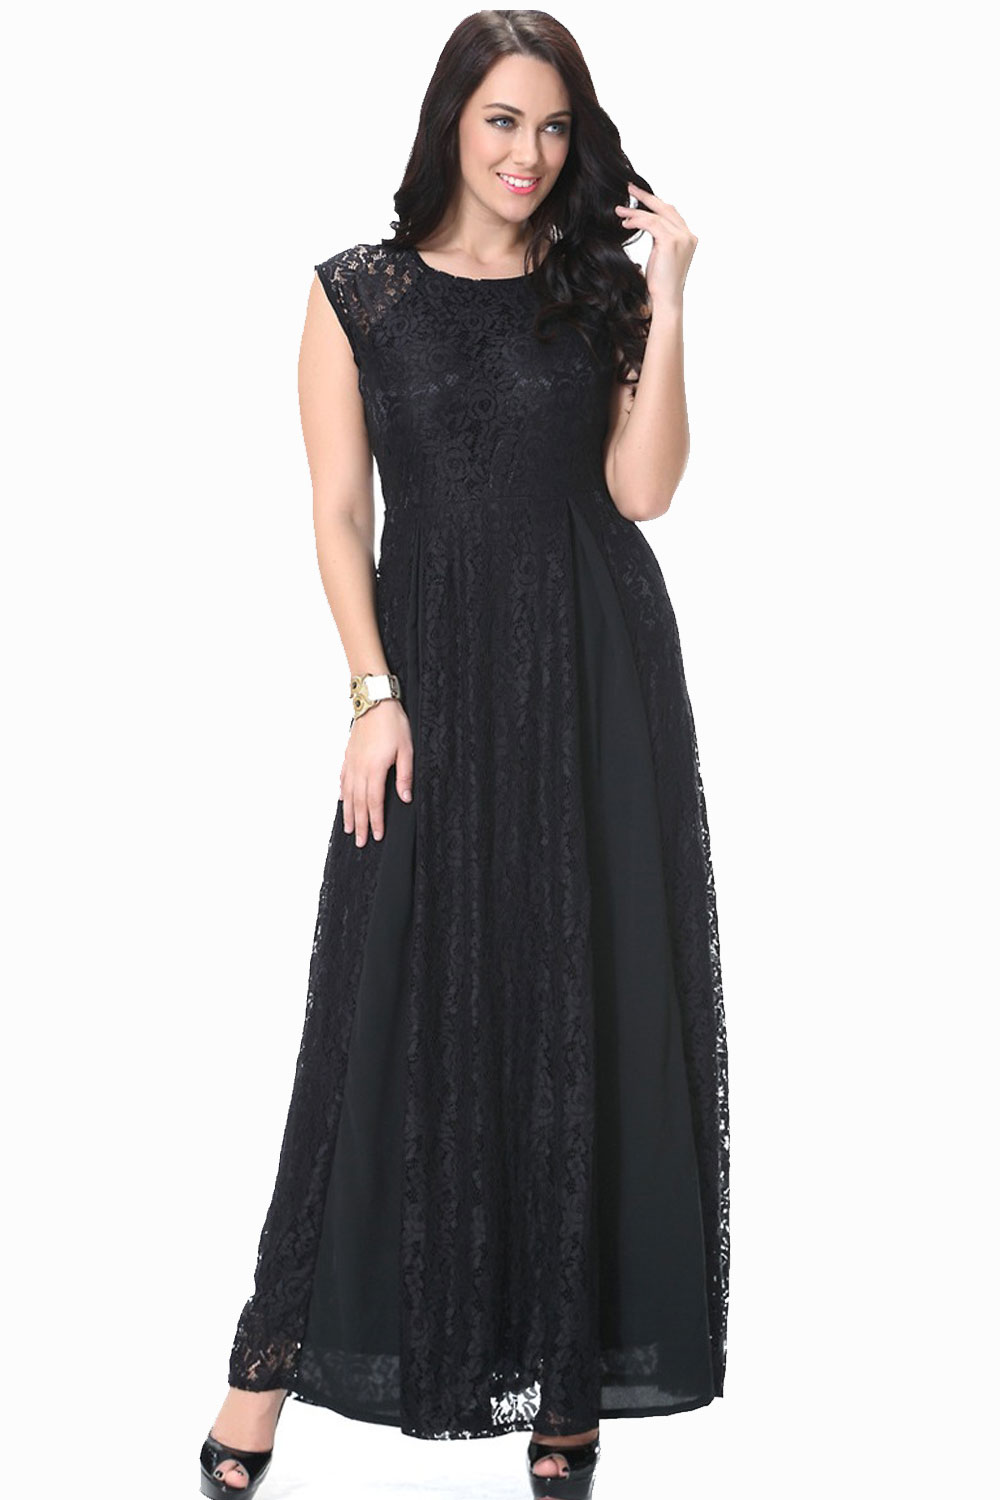 UNOMATCH WOMEN ROUND NECK SLEEVELESS PLUS SIZE LACE DRESS ...